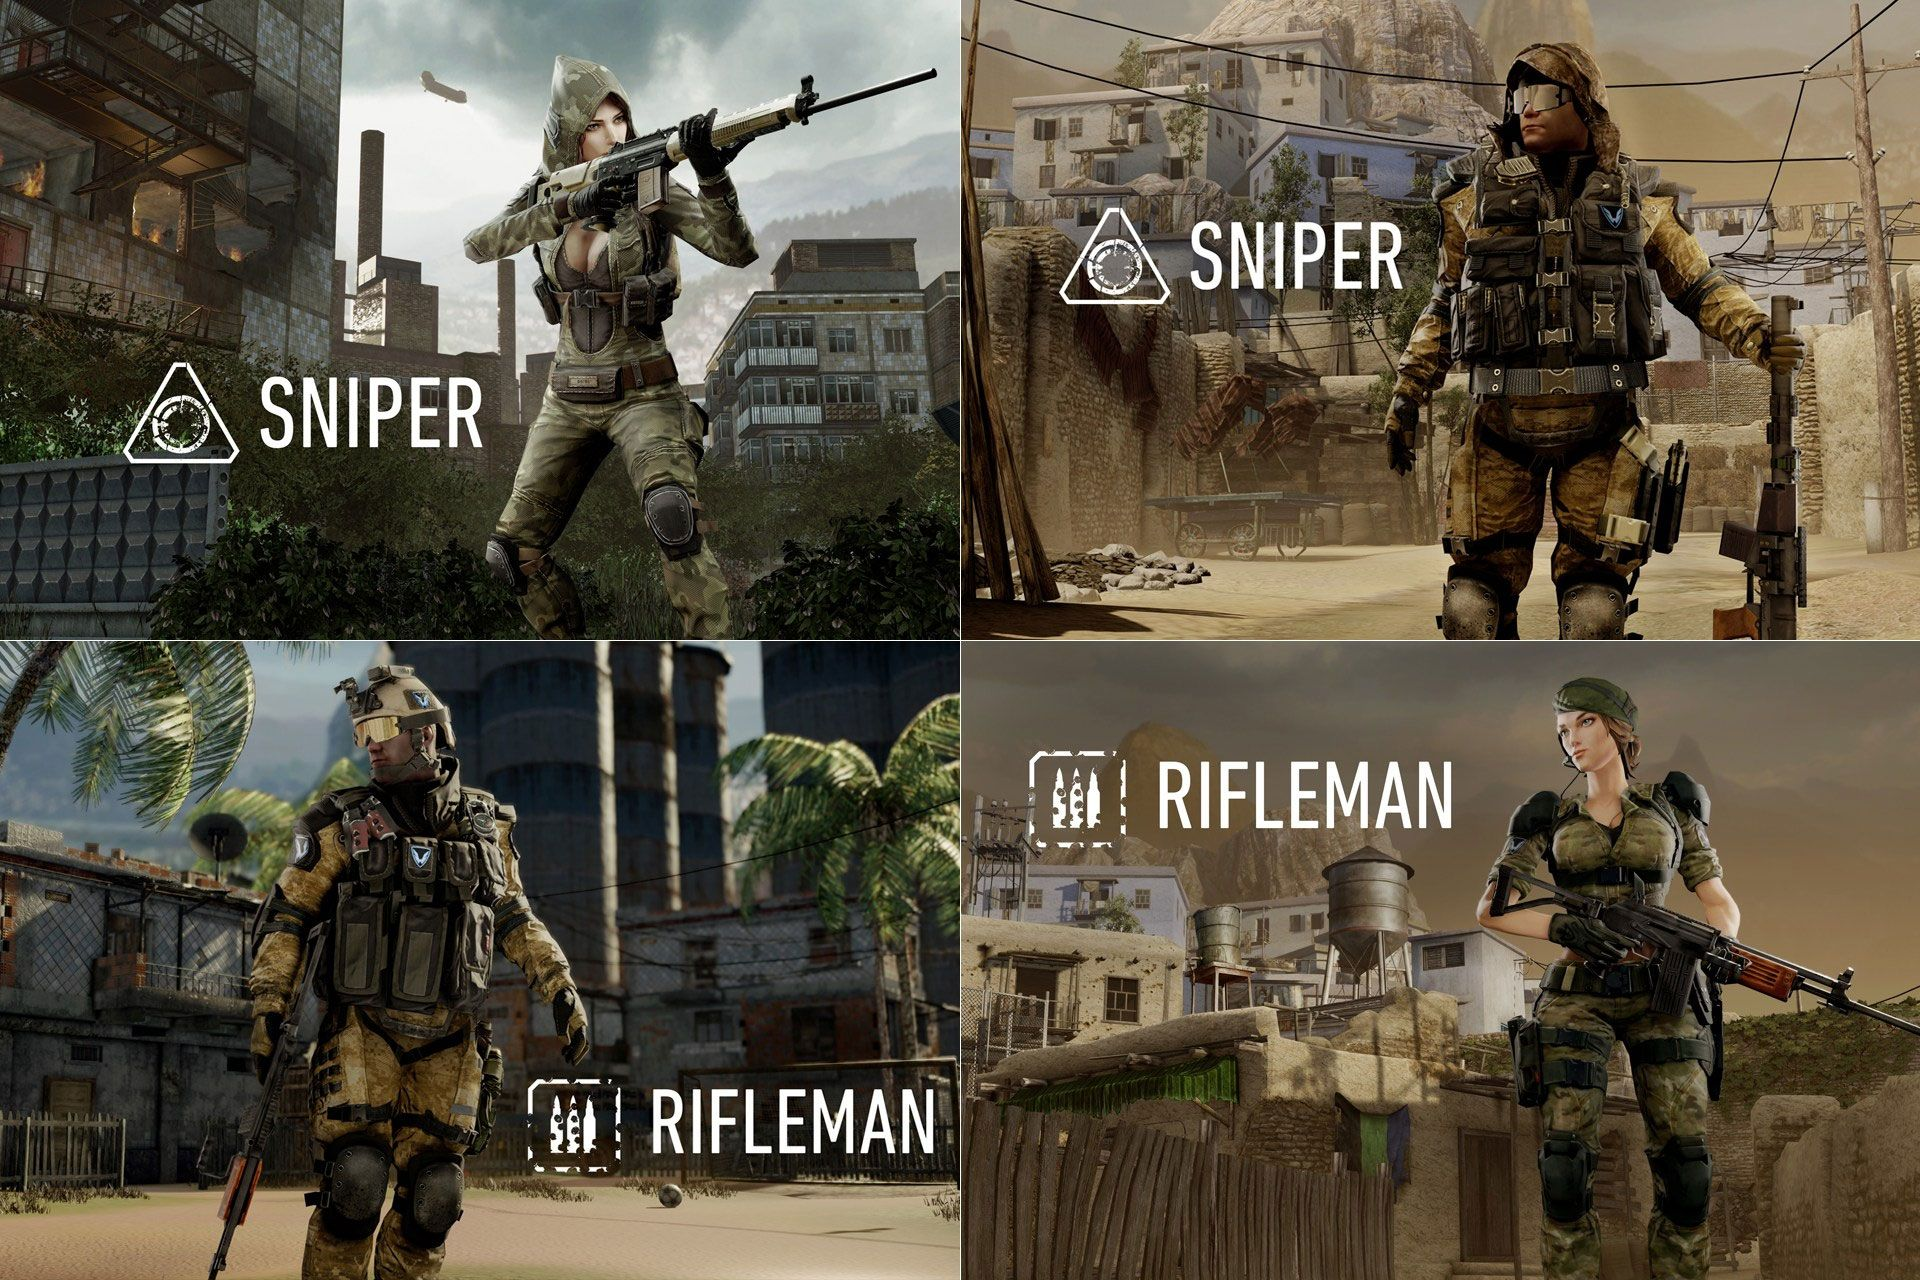 How some gamers want female soldiers to look female